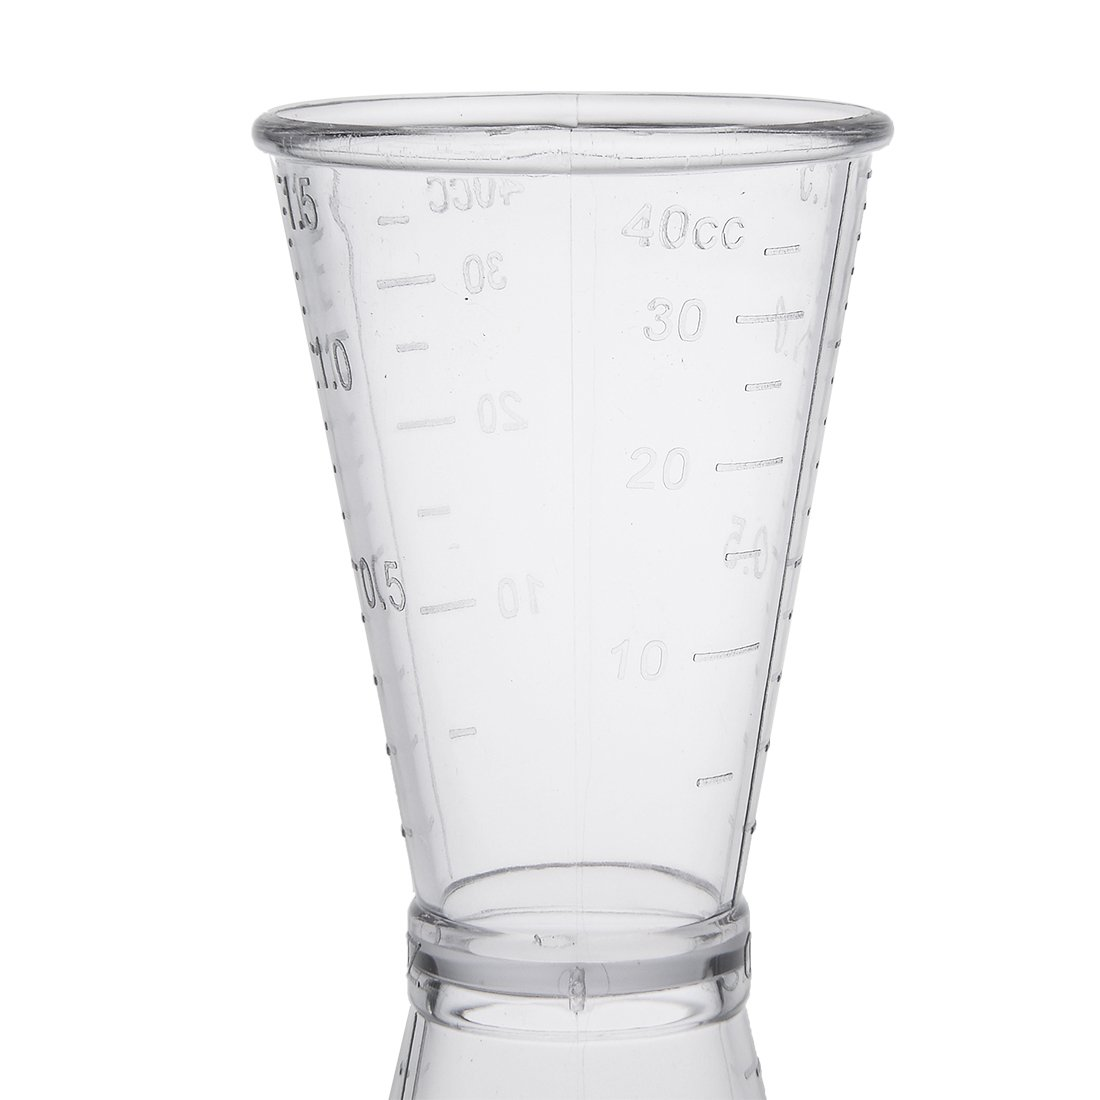 sourcing map Dual Clear Plastic Shot Glasses Drink Spirit Measure Cup for Bar Party Kitchen Tool